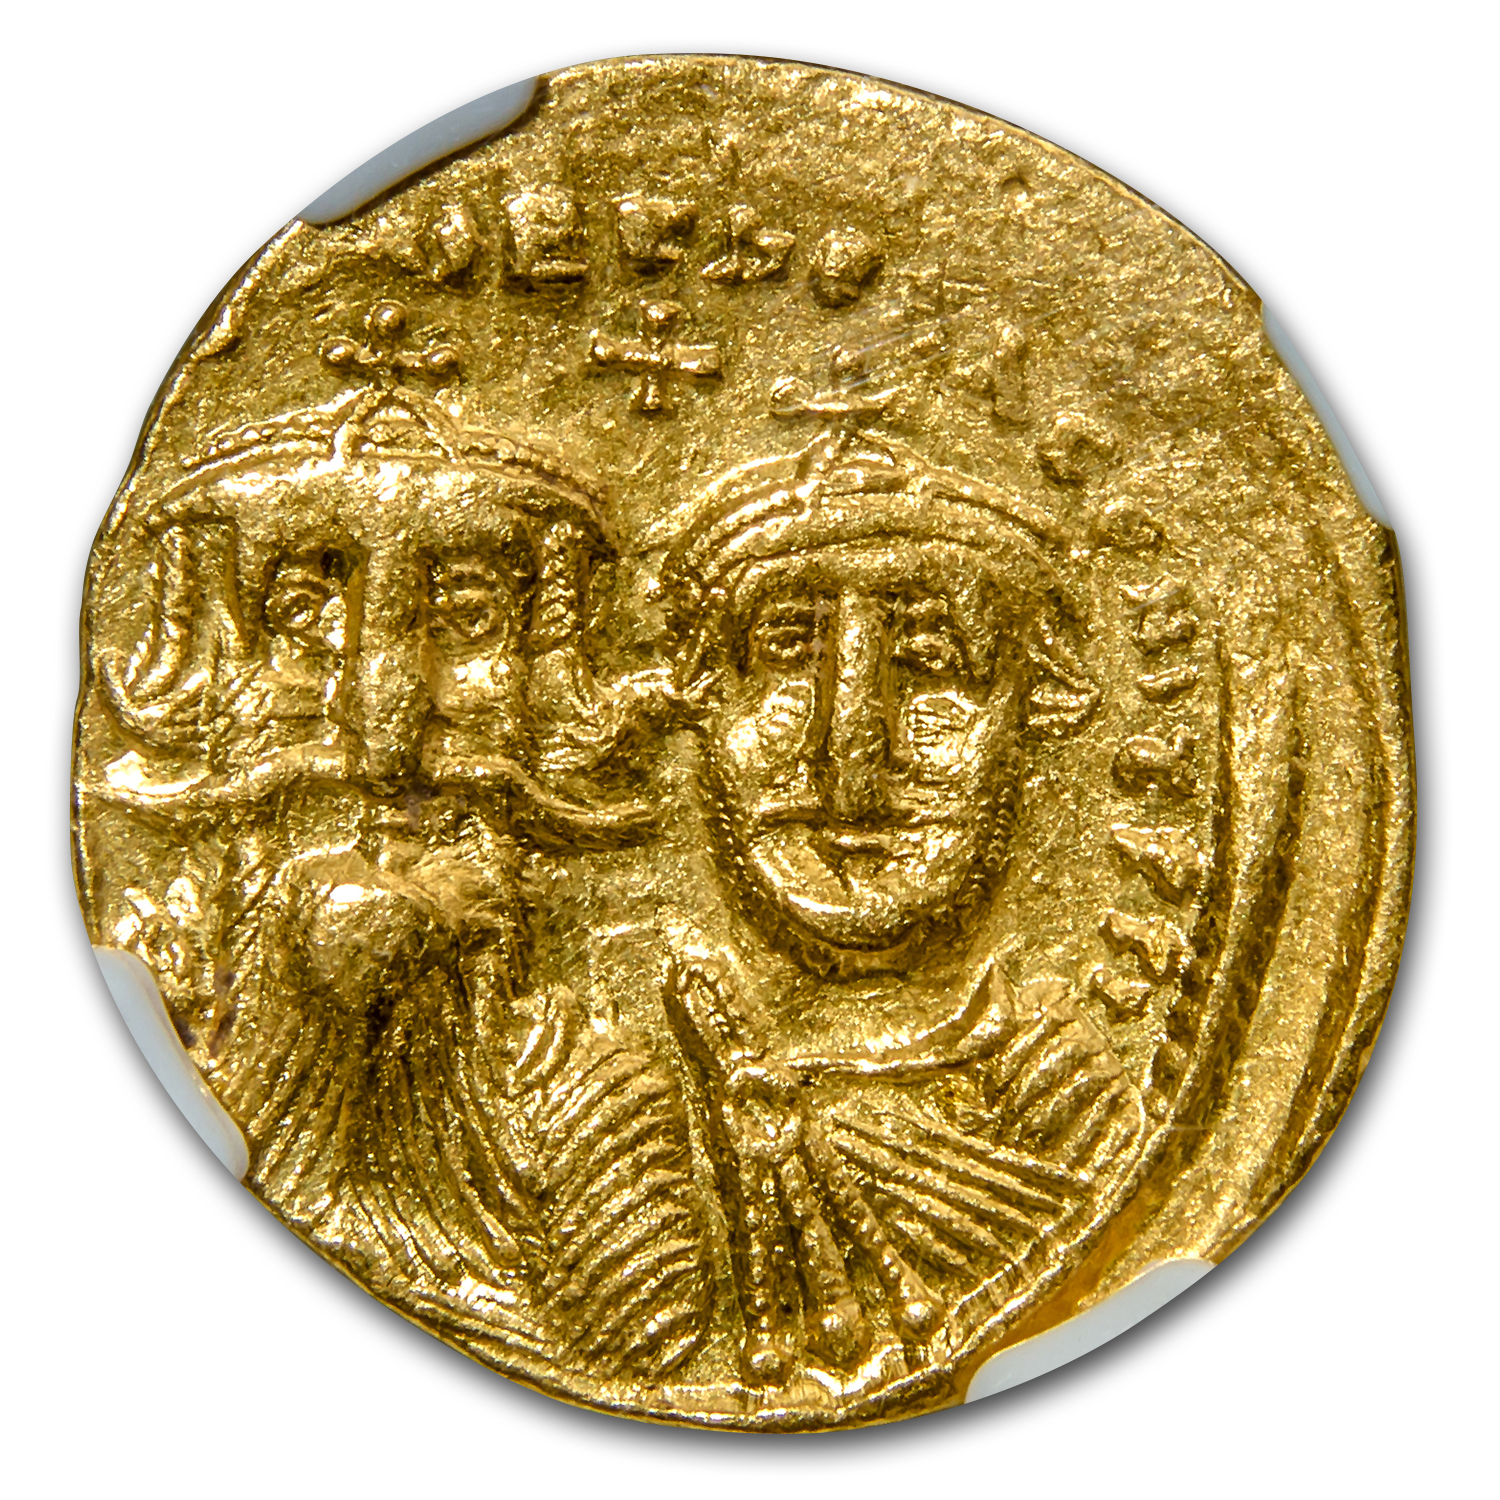 Byzantine Gold Solidus Emperor Heraclius XF NGC (613-641 AD)